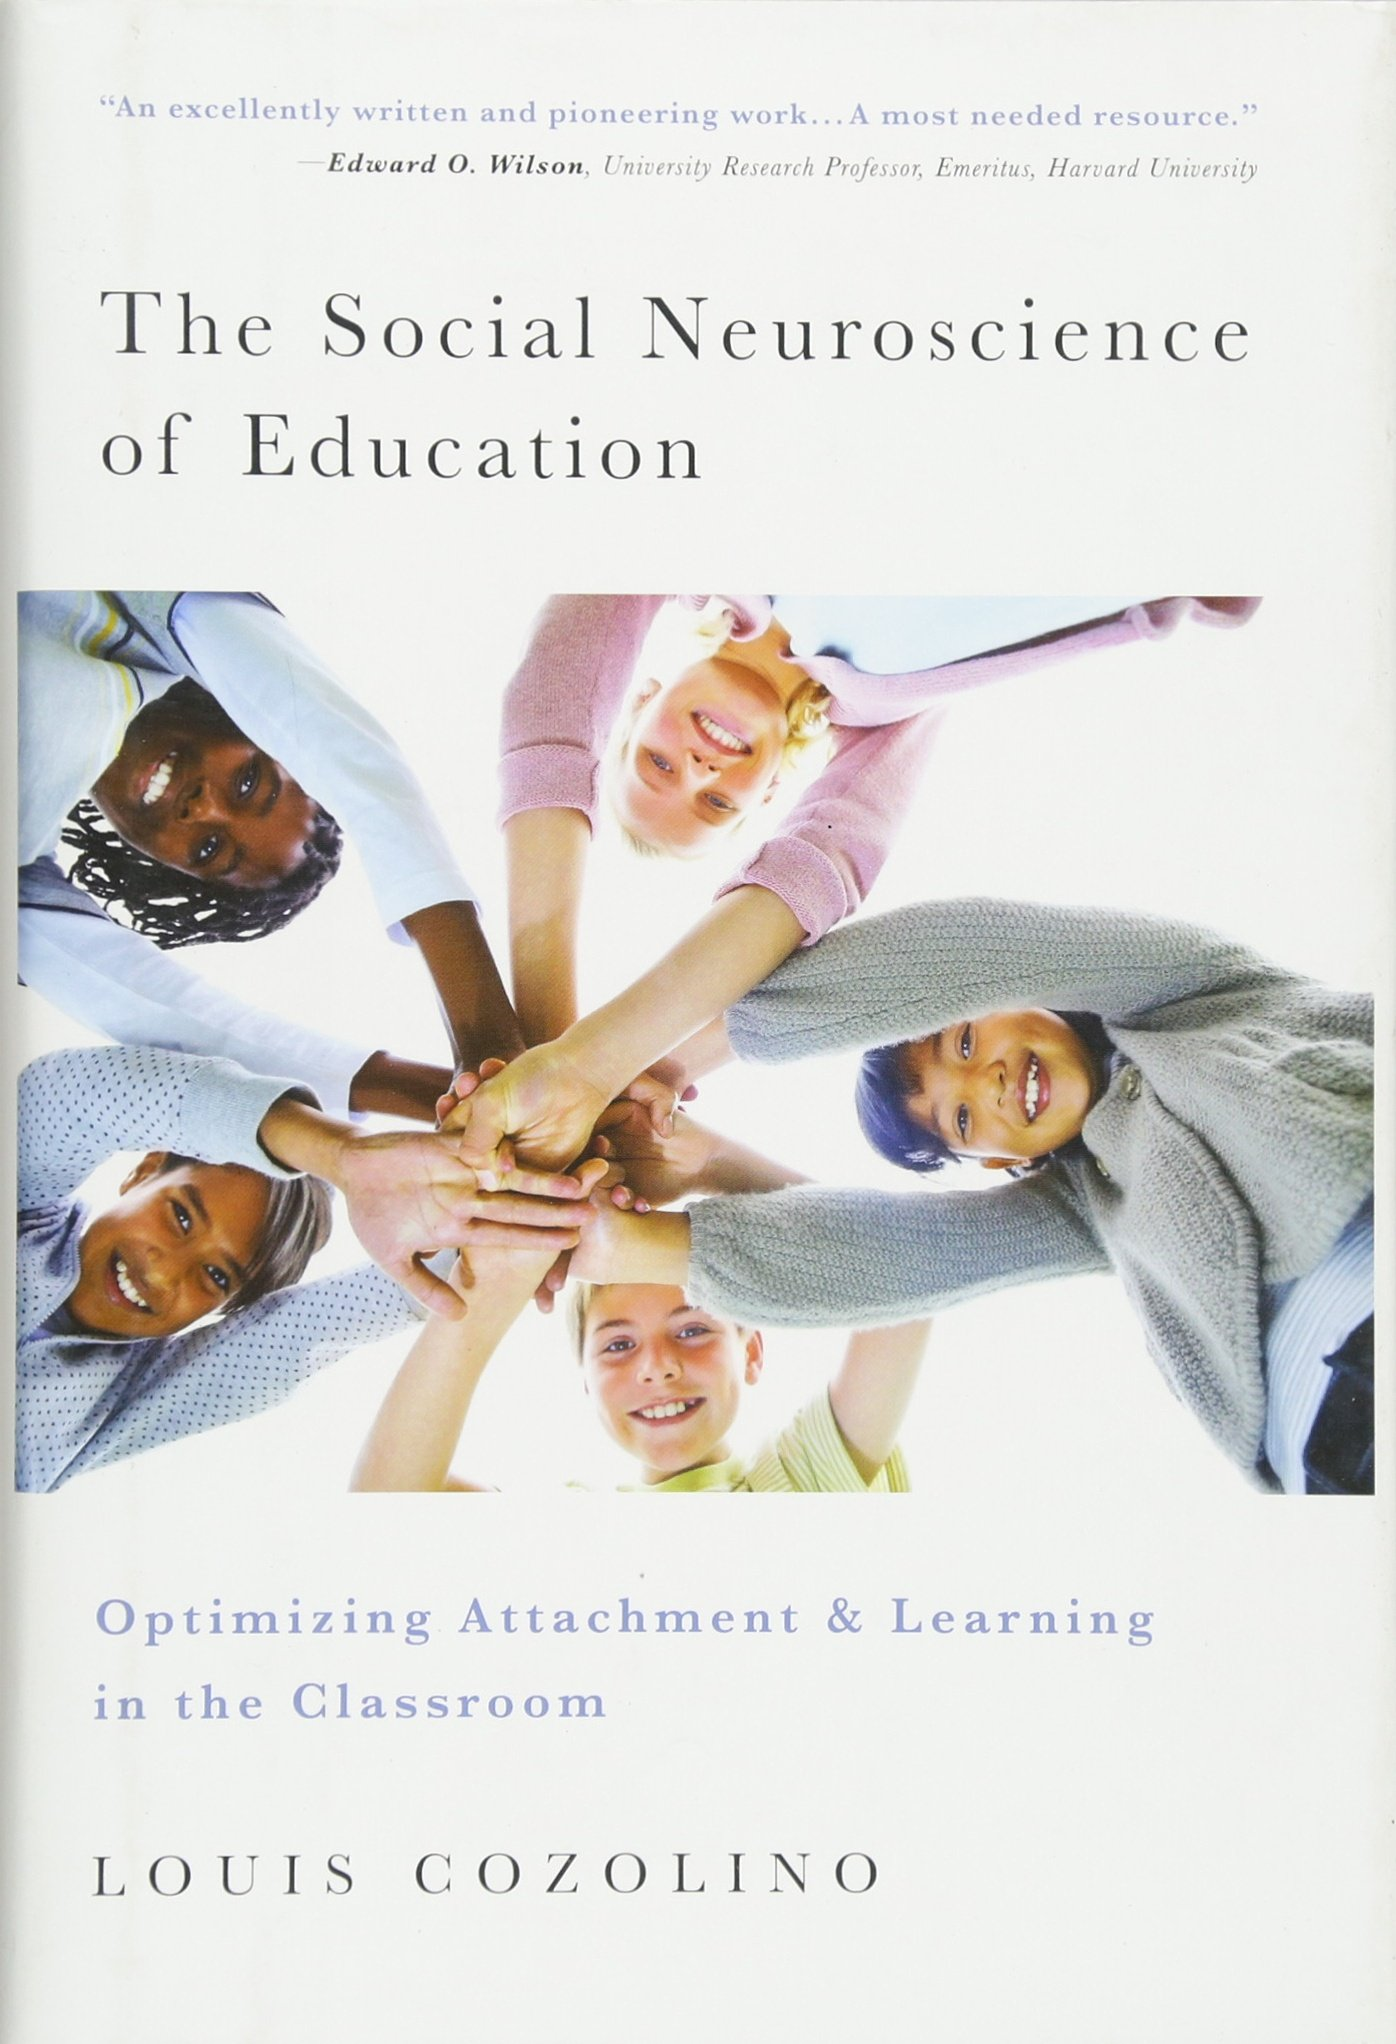 The Social Neuroscience of Education: Optimizing Attachment